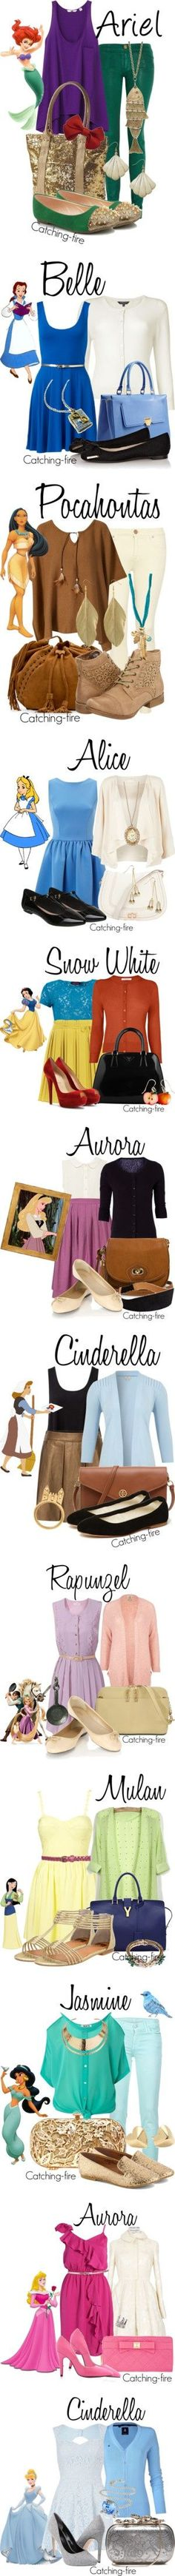 Disney Fashion!! Would be fun to wear these outfits on our trip to Disney!